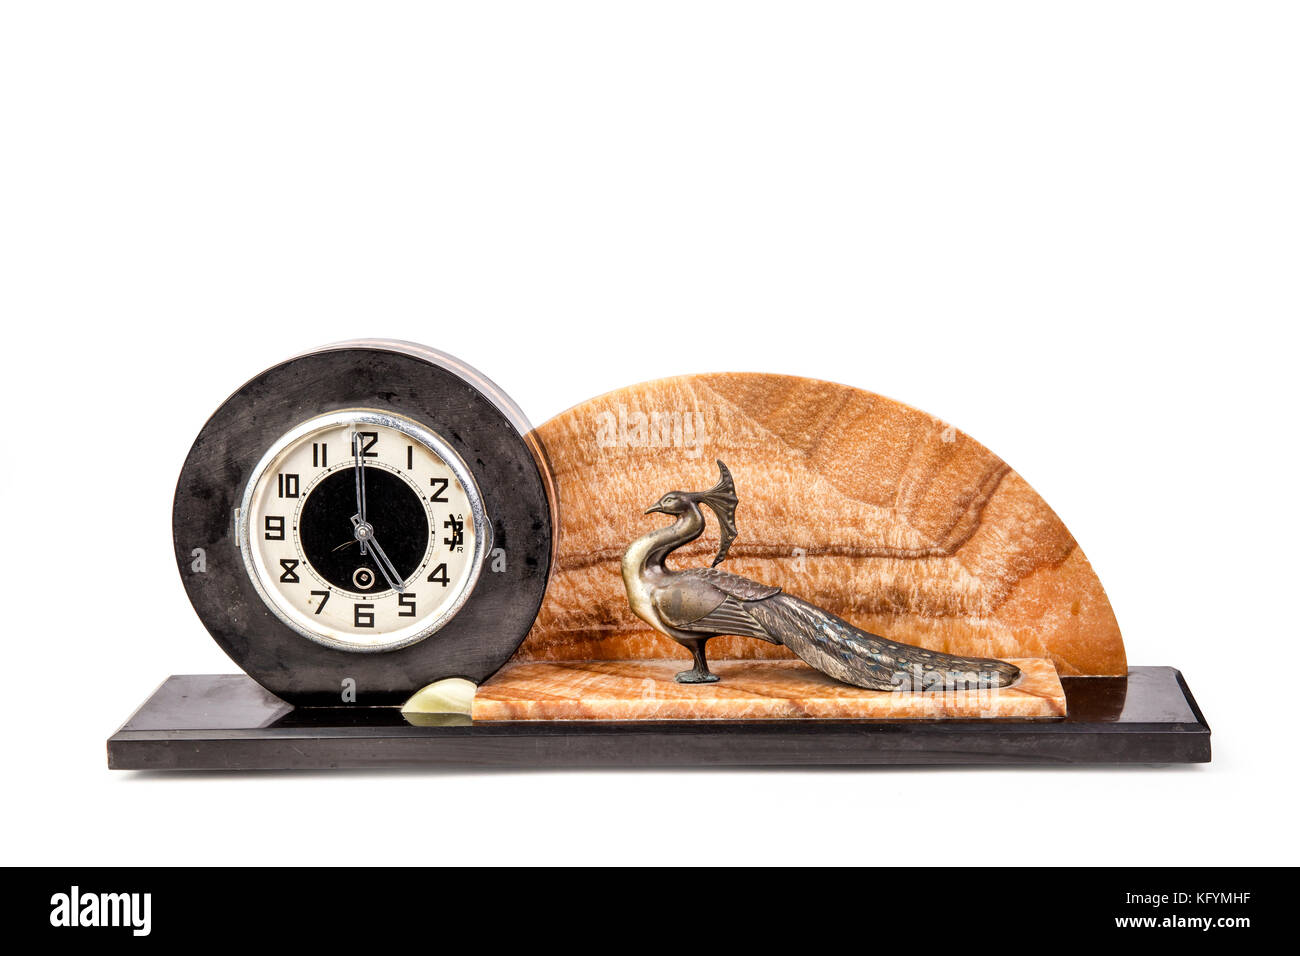 Antique table clock with peacock statuette on the white background. - Stock Image